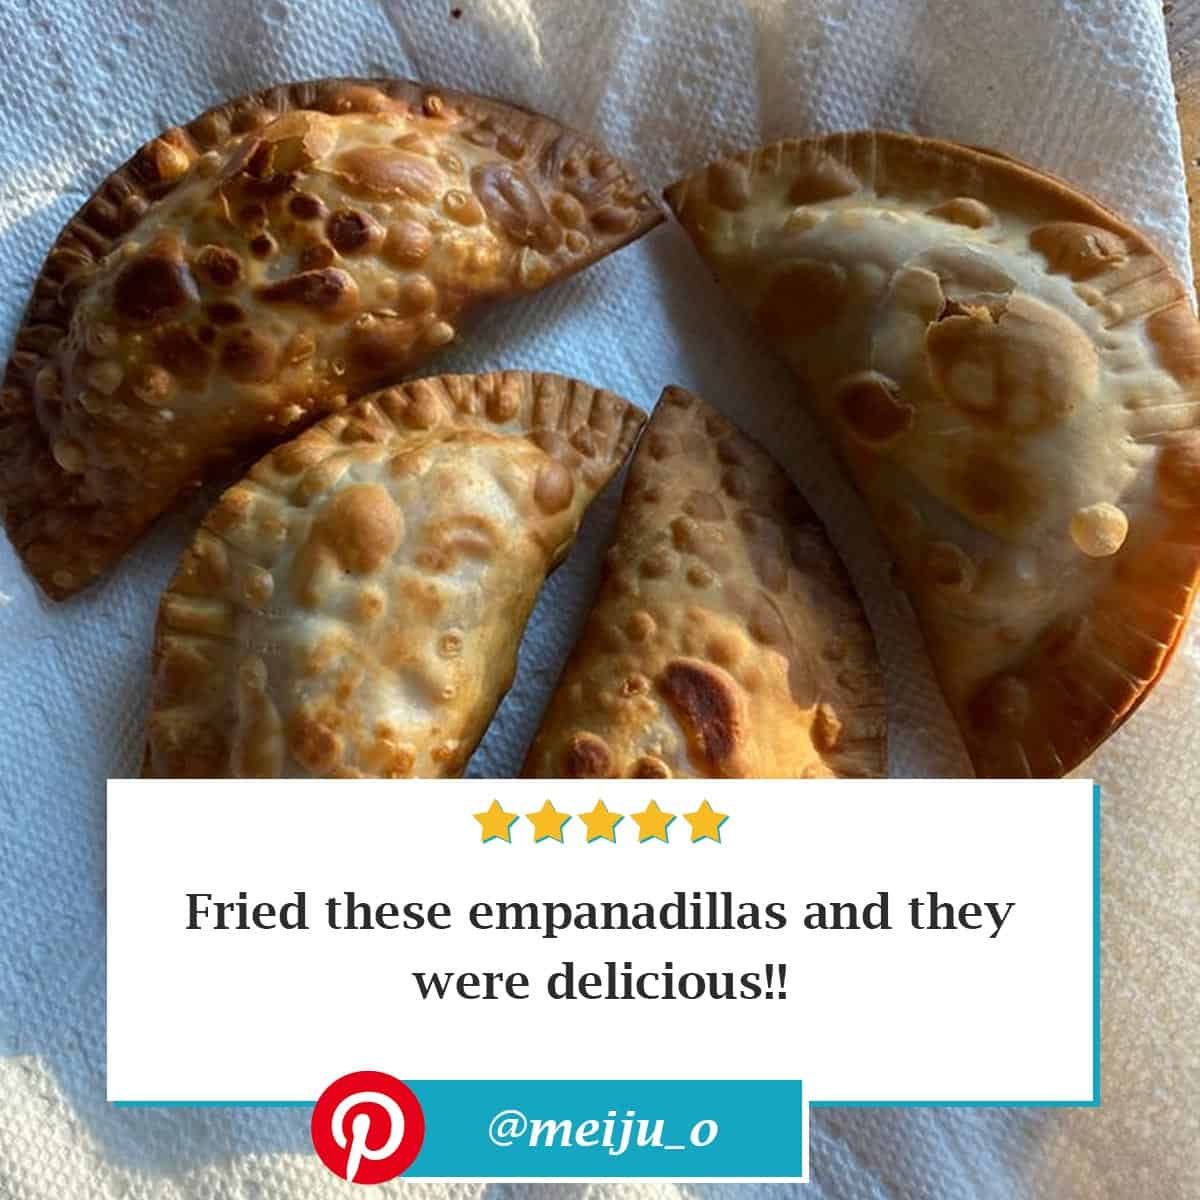 "Reviewer photo of Puerto Rican Empanadas and a text overlay reading ""Fried these empanadillas and they were delicious!!"" with their Pinterest username: @meiju_o"